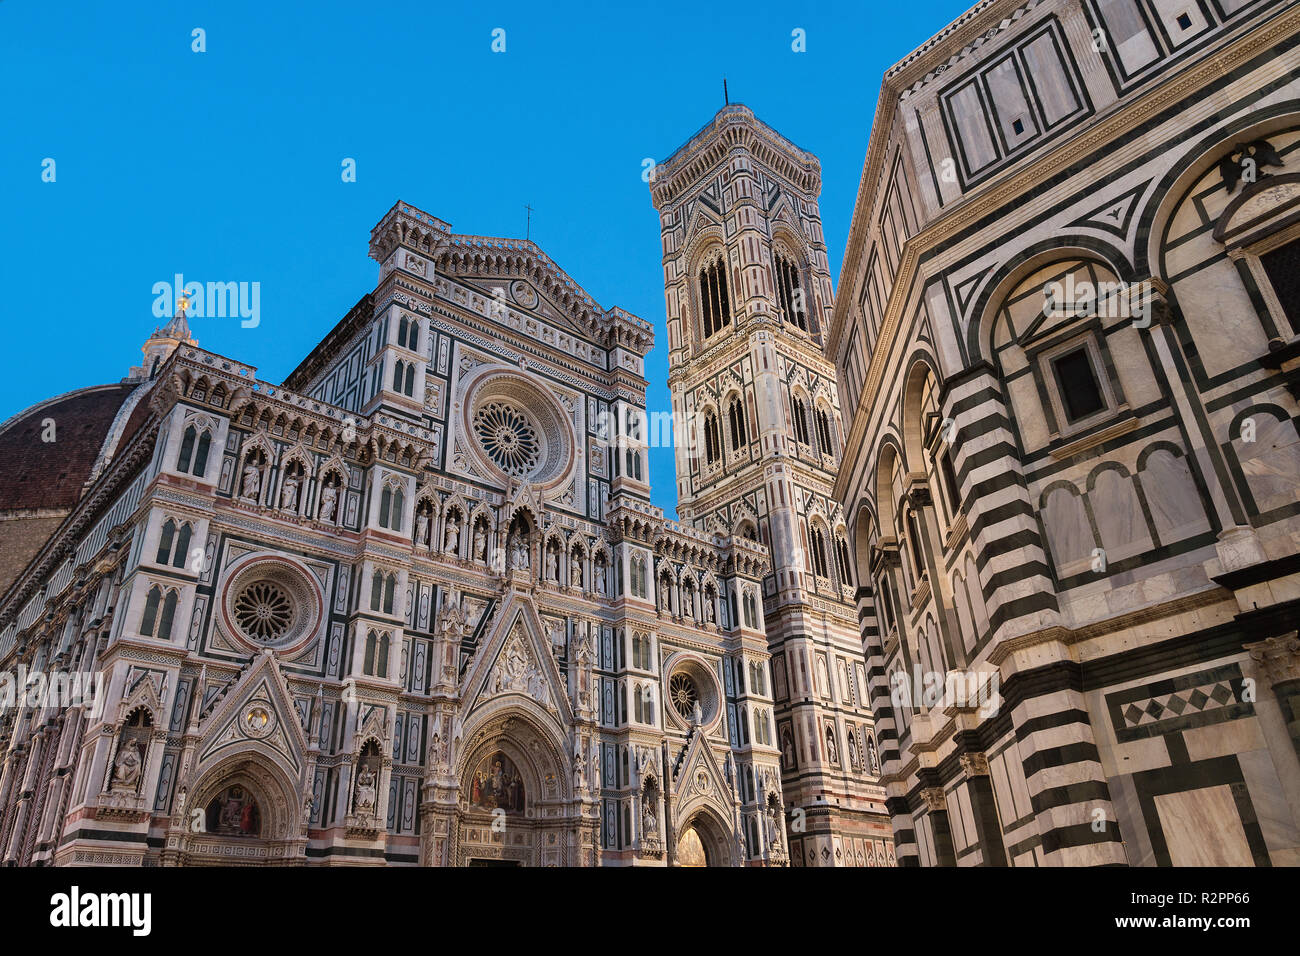 Florence, Cathedral of Santa Maria del Fiore, blue hour - Stock Image